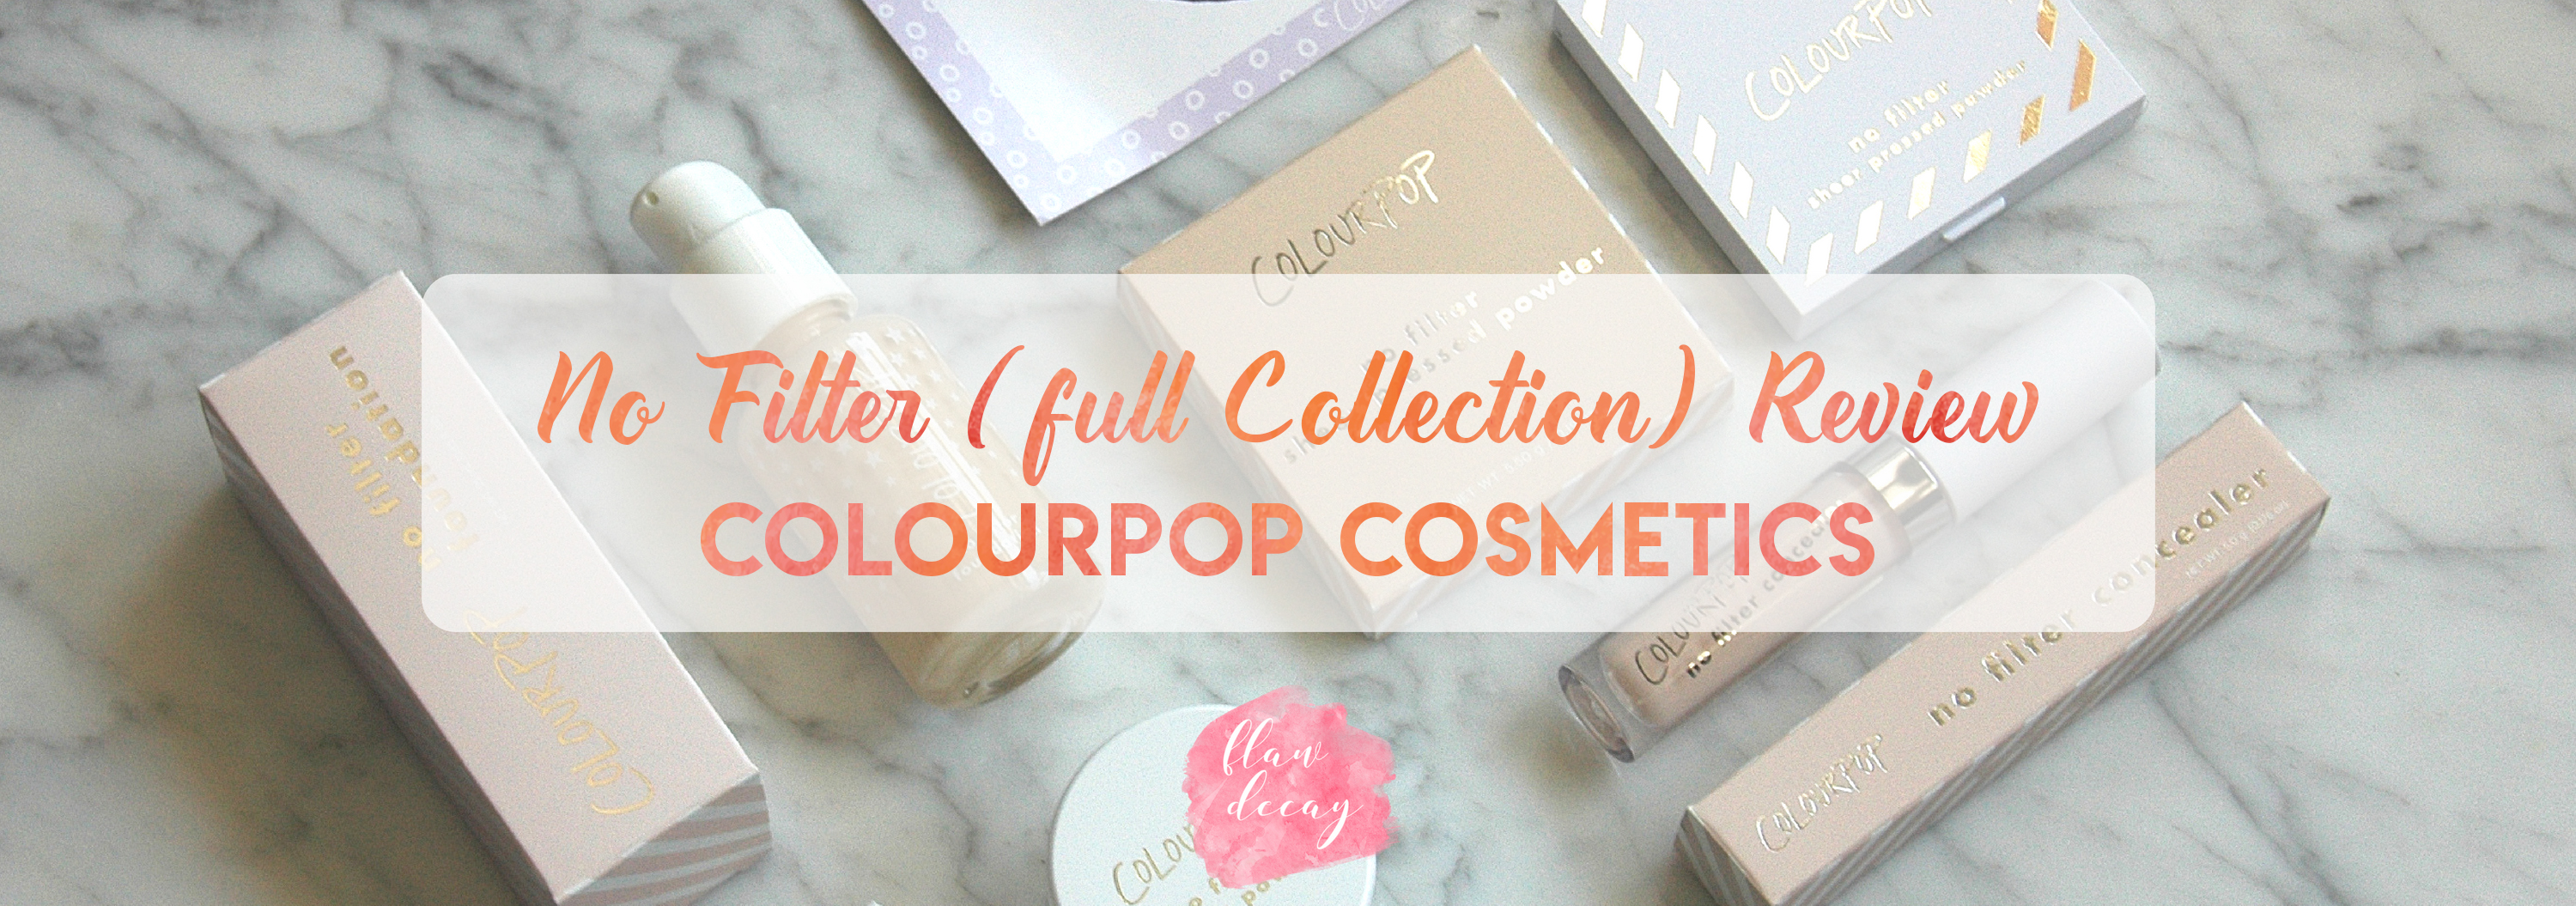 Colourpop Cosmetics – No Filter FULL Collection Review (ENG/ESP)